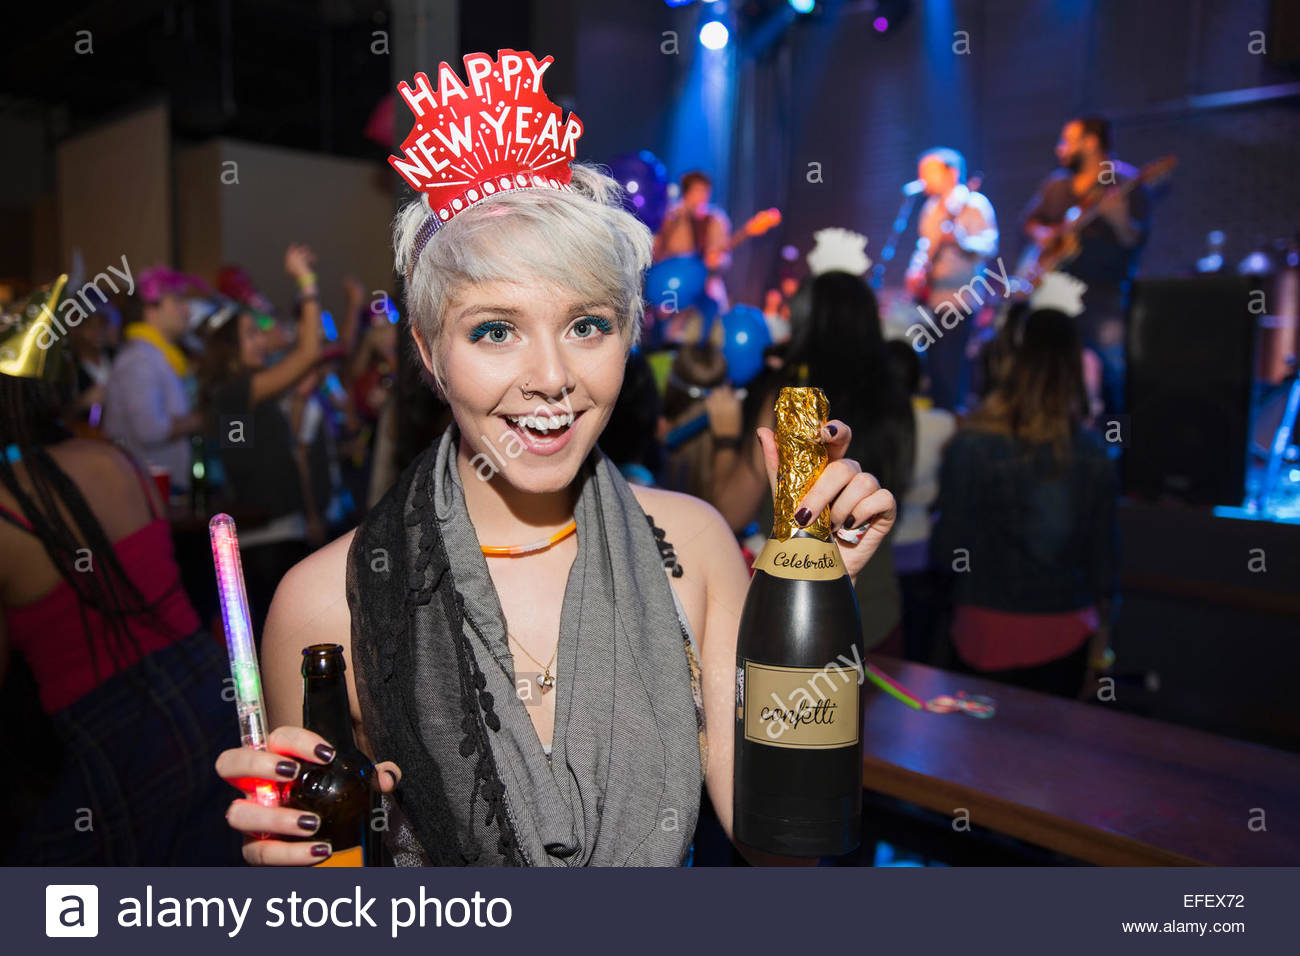 Portrait of woman with champagne celebrating New Year - Stock Image